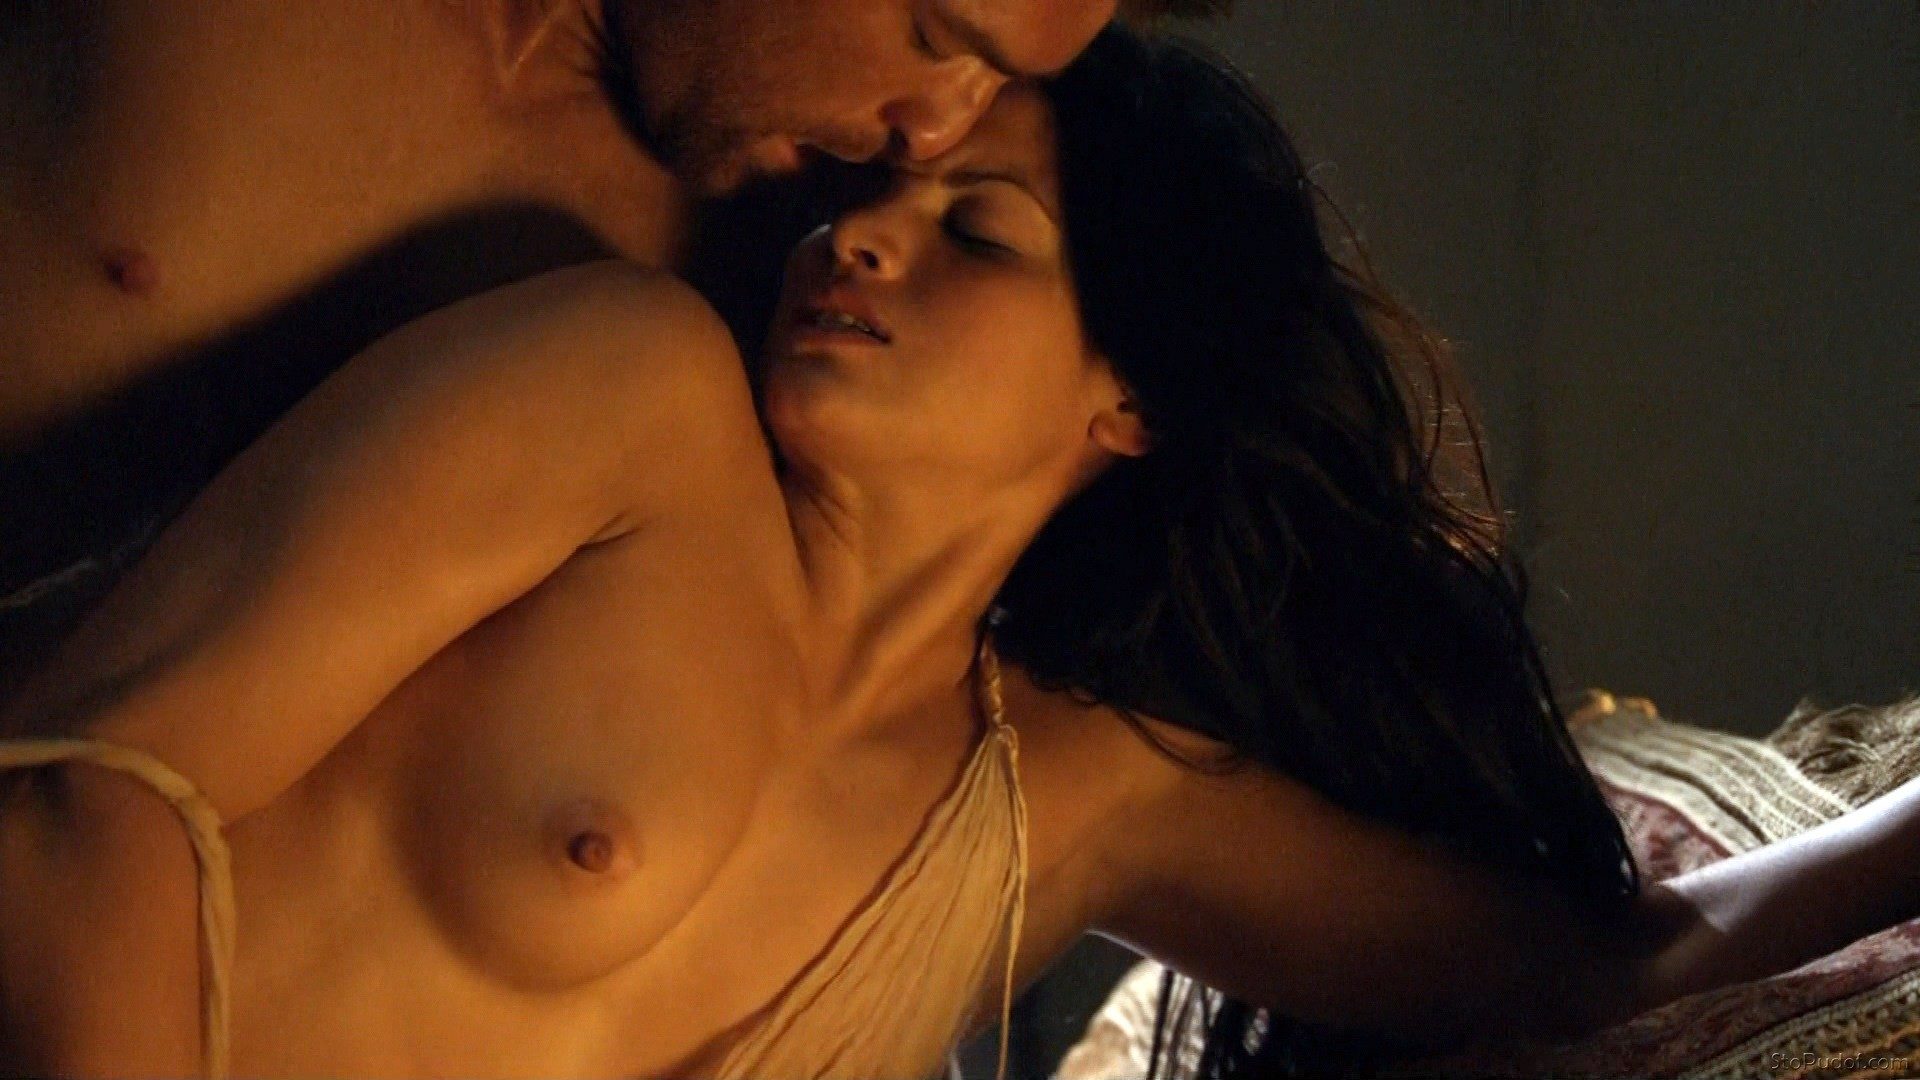 Katrina Law nude wallpapers - UkPhotoSafari